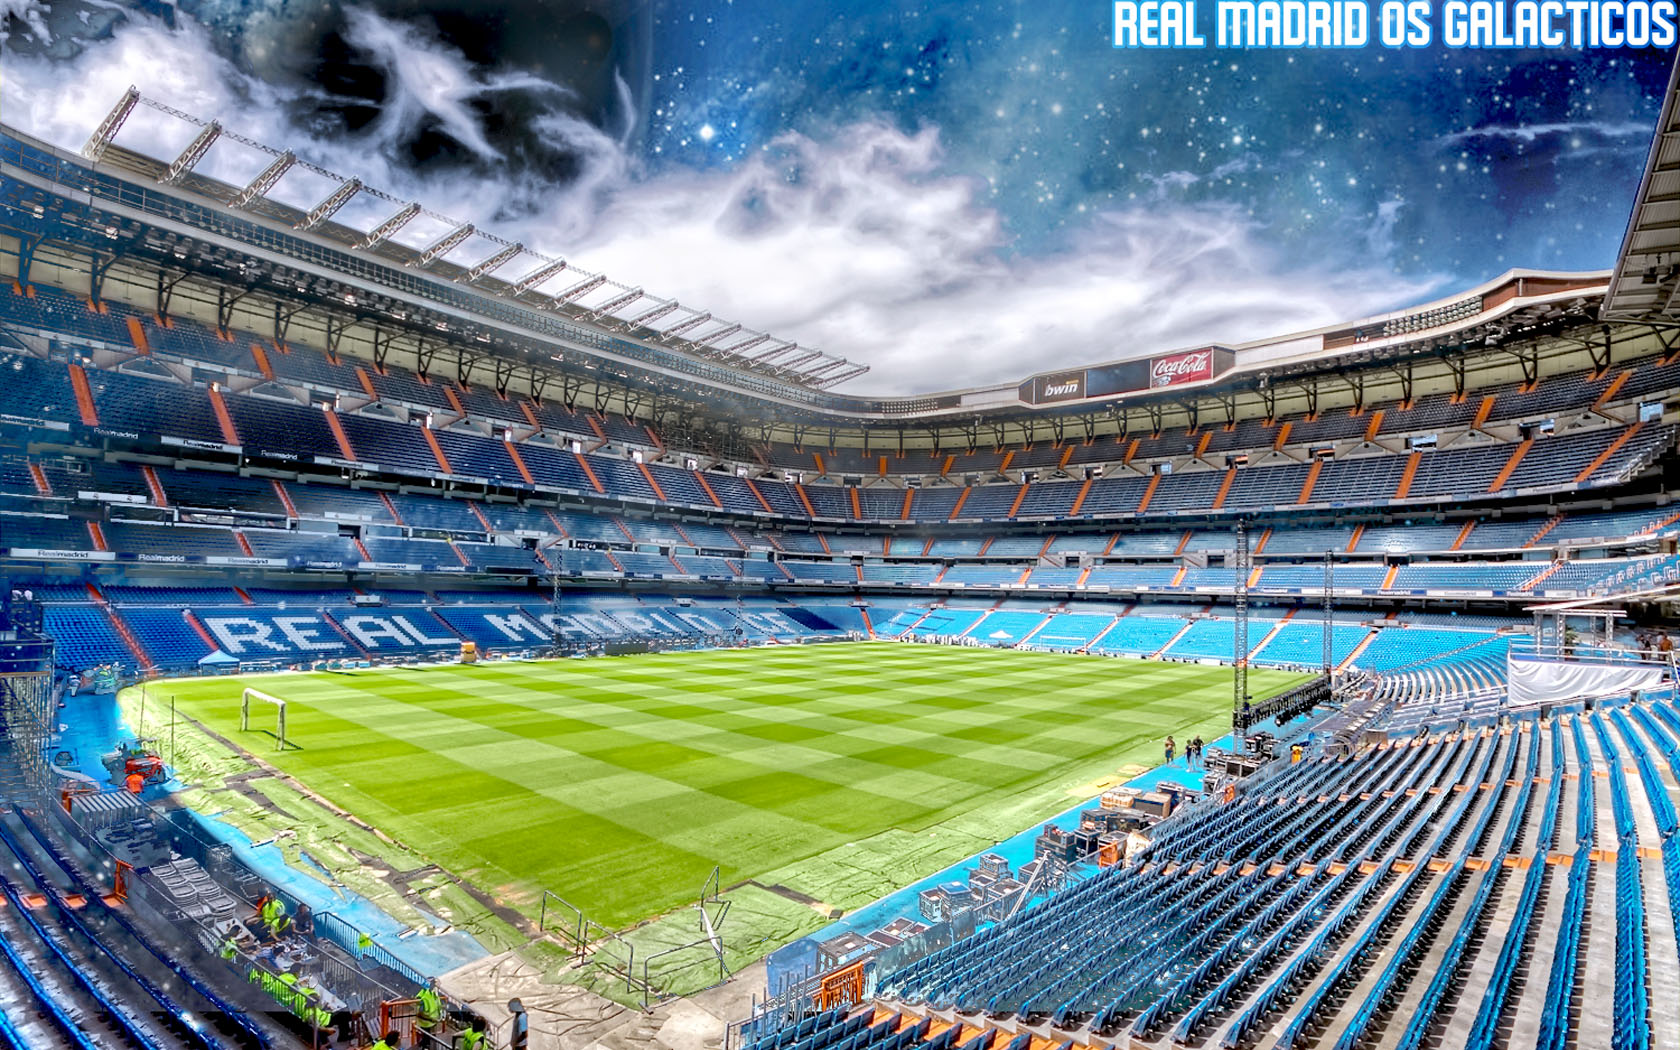 Santiago Bernabeu Real 1680x1050 wallpaper